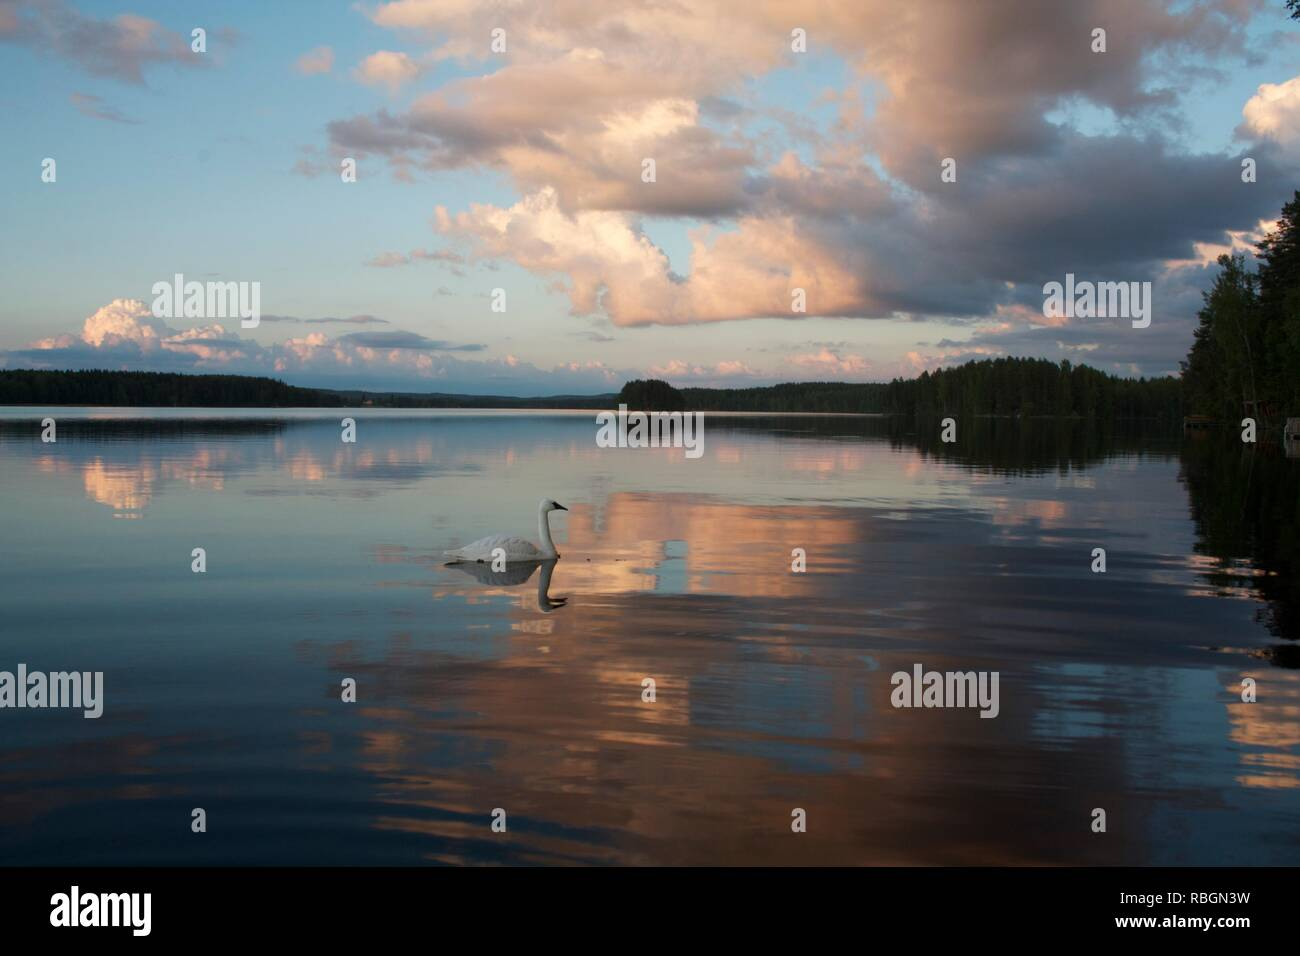 A lake landscape from Finland - Stock Image